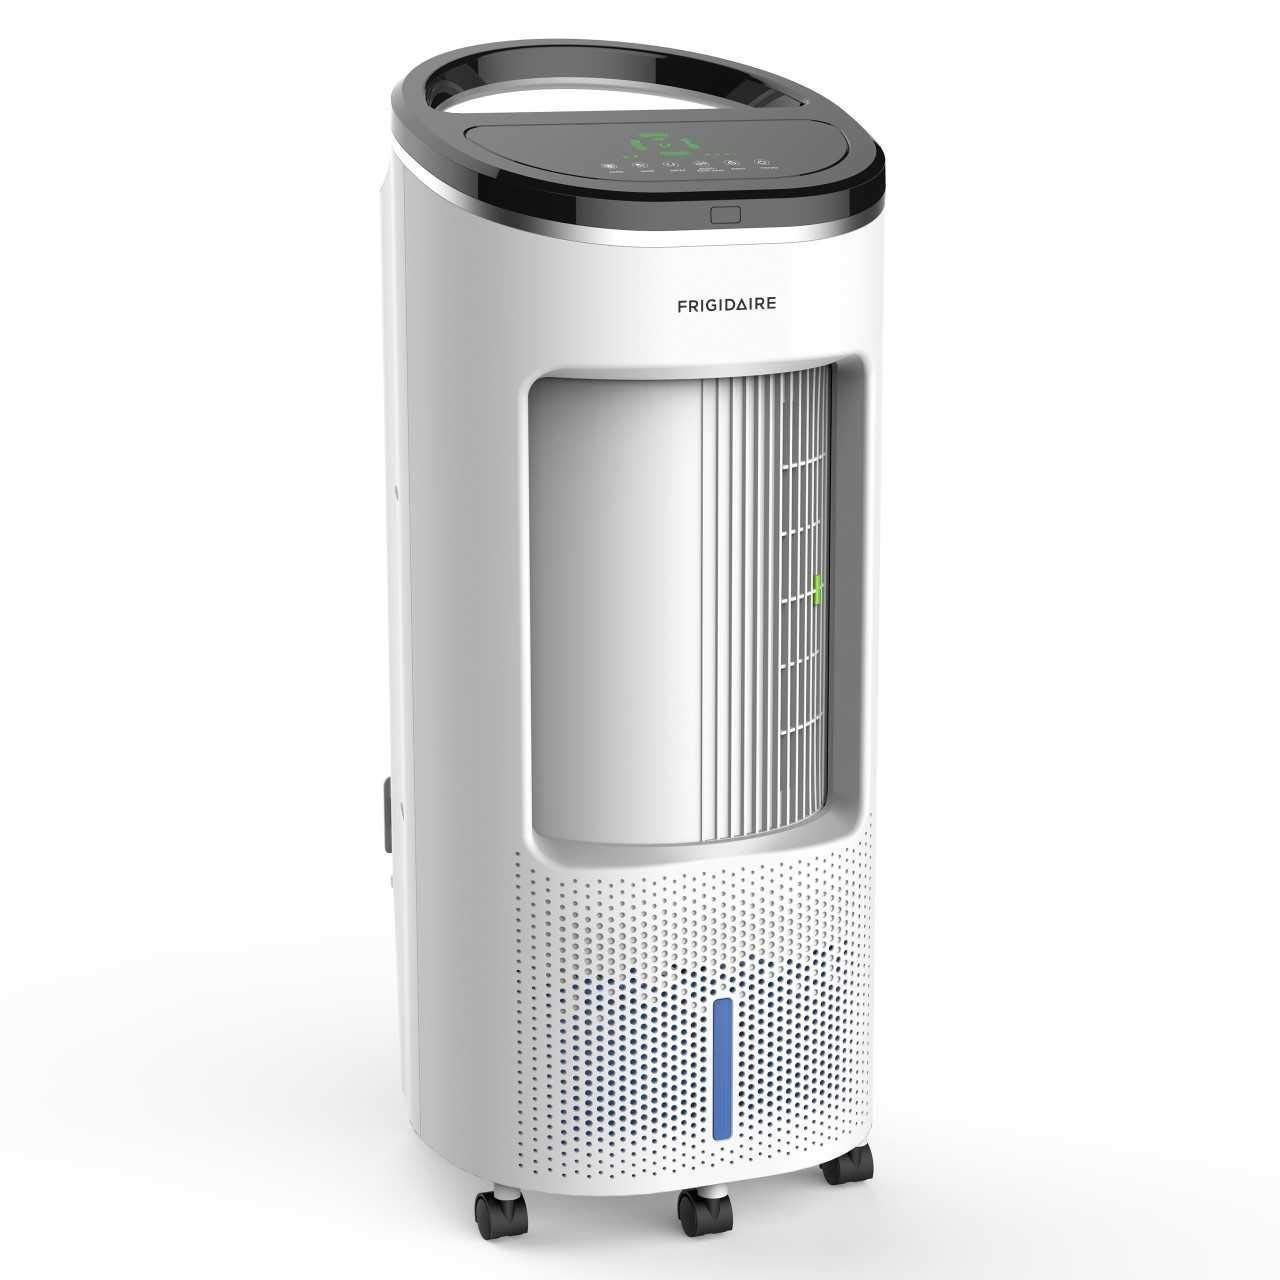 Amazon Com Frigidaire Portable Evaporative Air Cooler And Humidifier Personal Indoor Space Cooler Ec200wf Home Evaporative Cooler Swamp Cooler Air Cooler